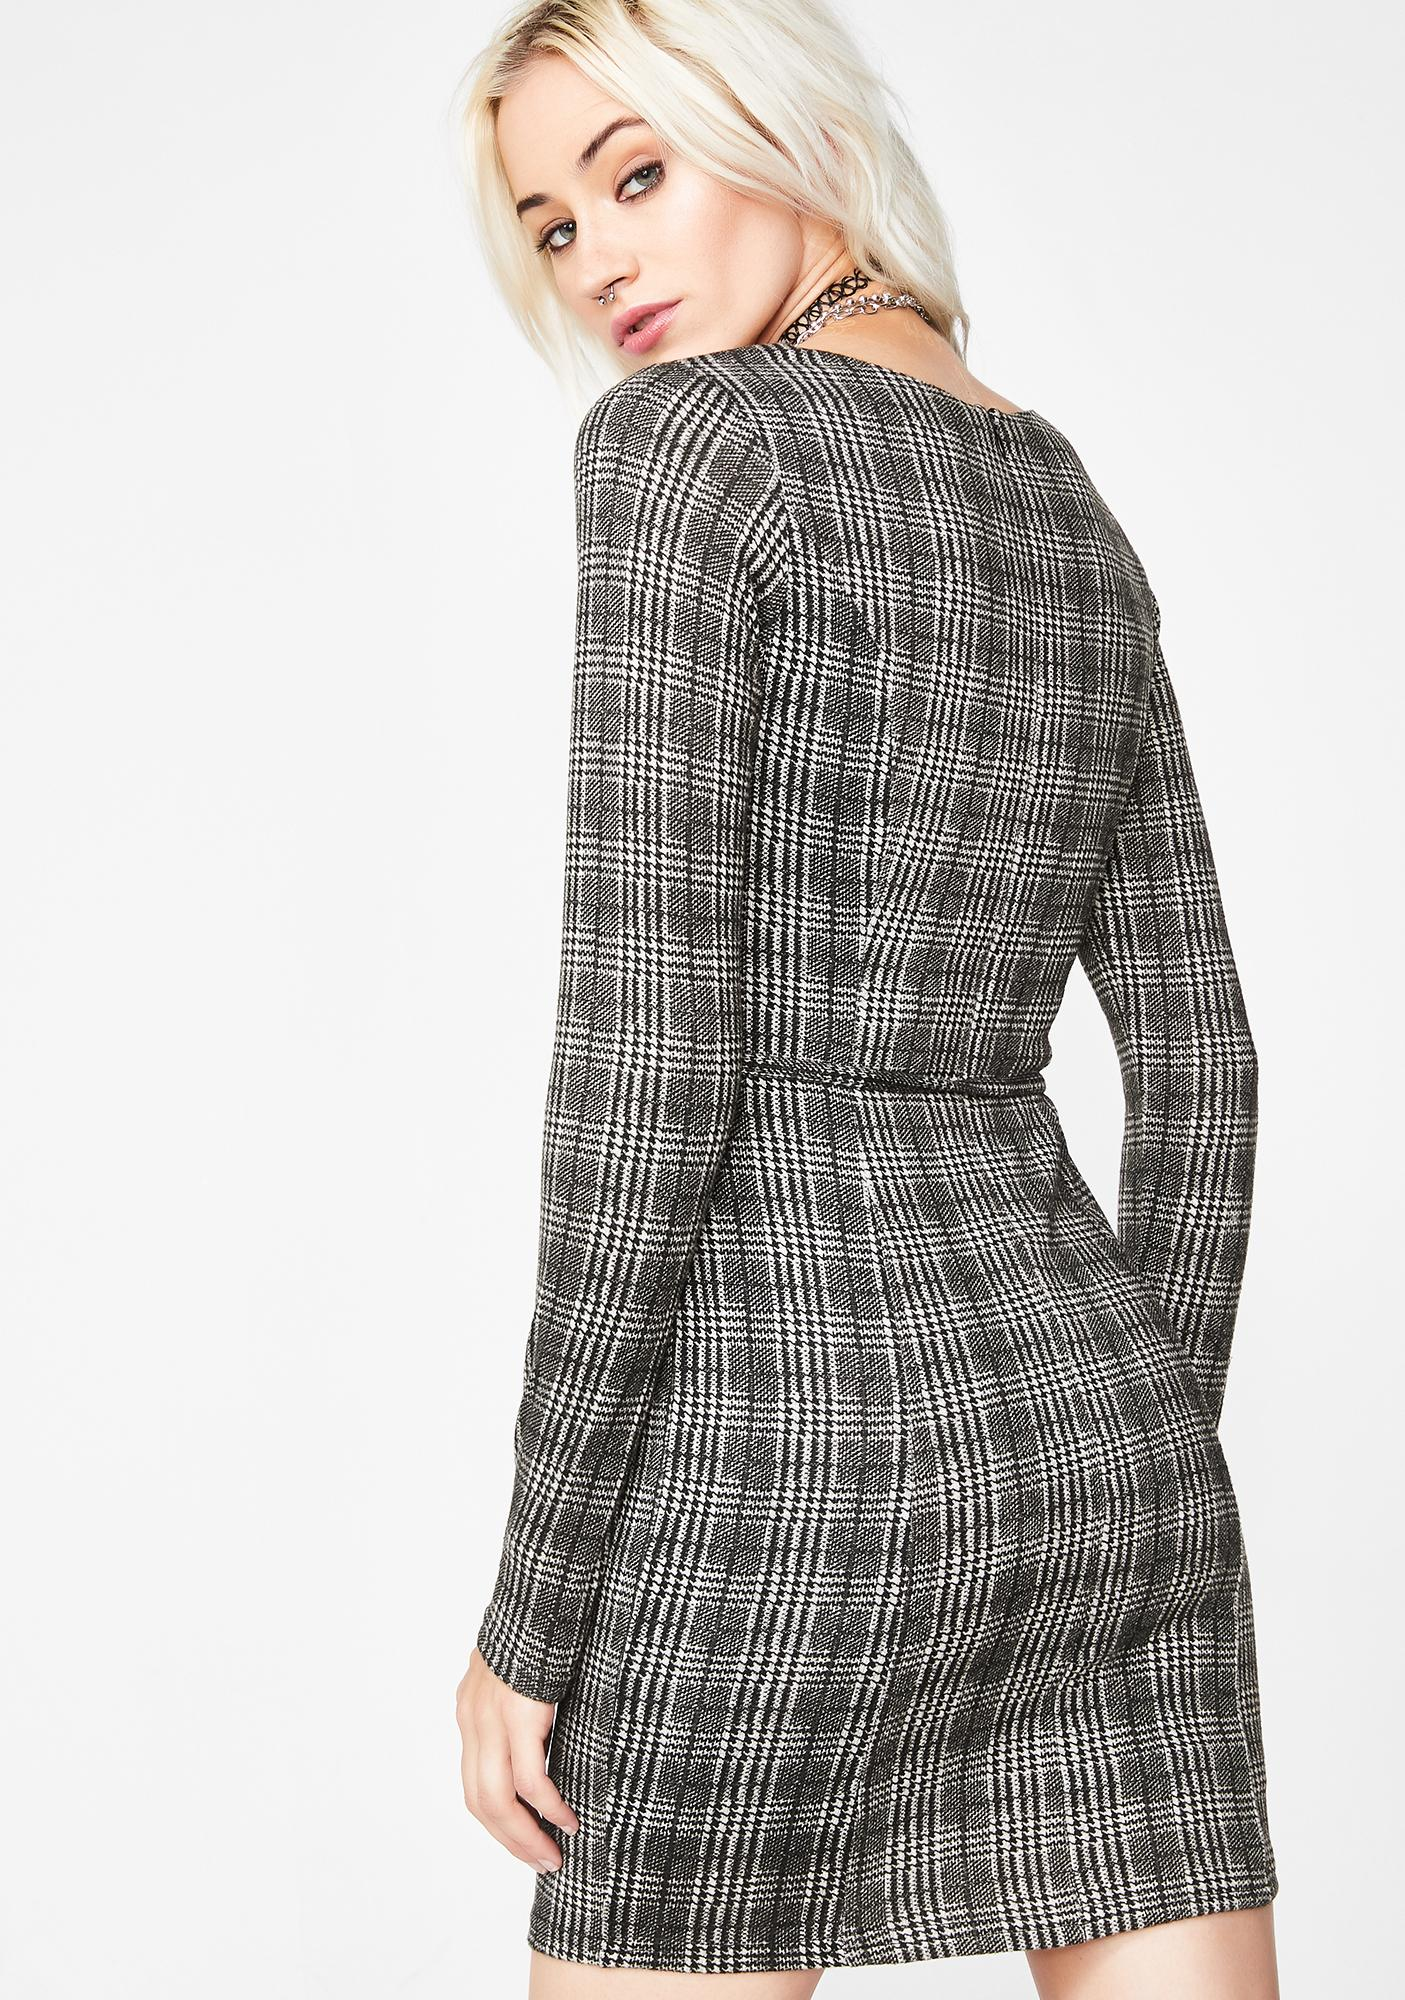 Wicked Company Plaid Dress